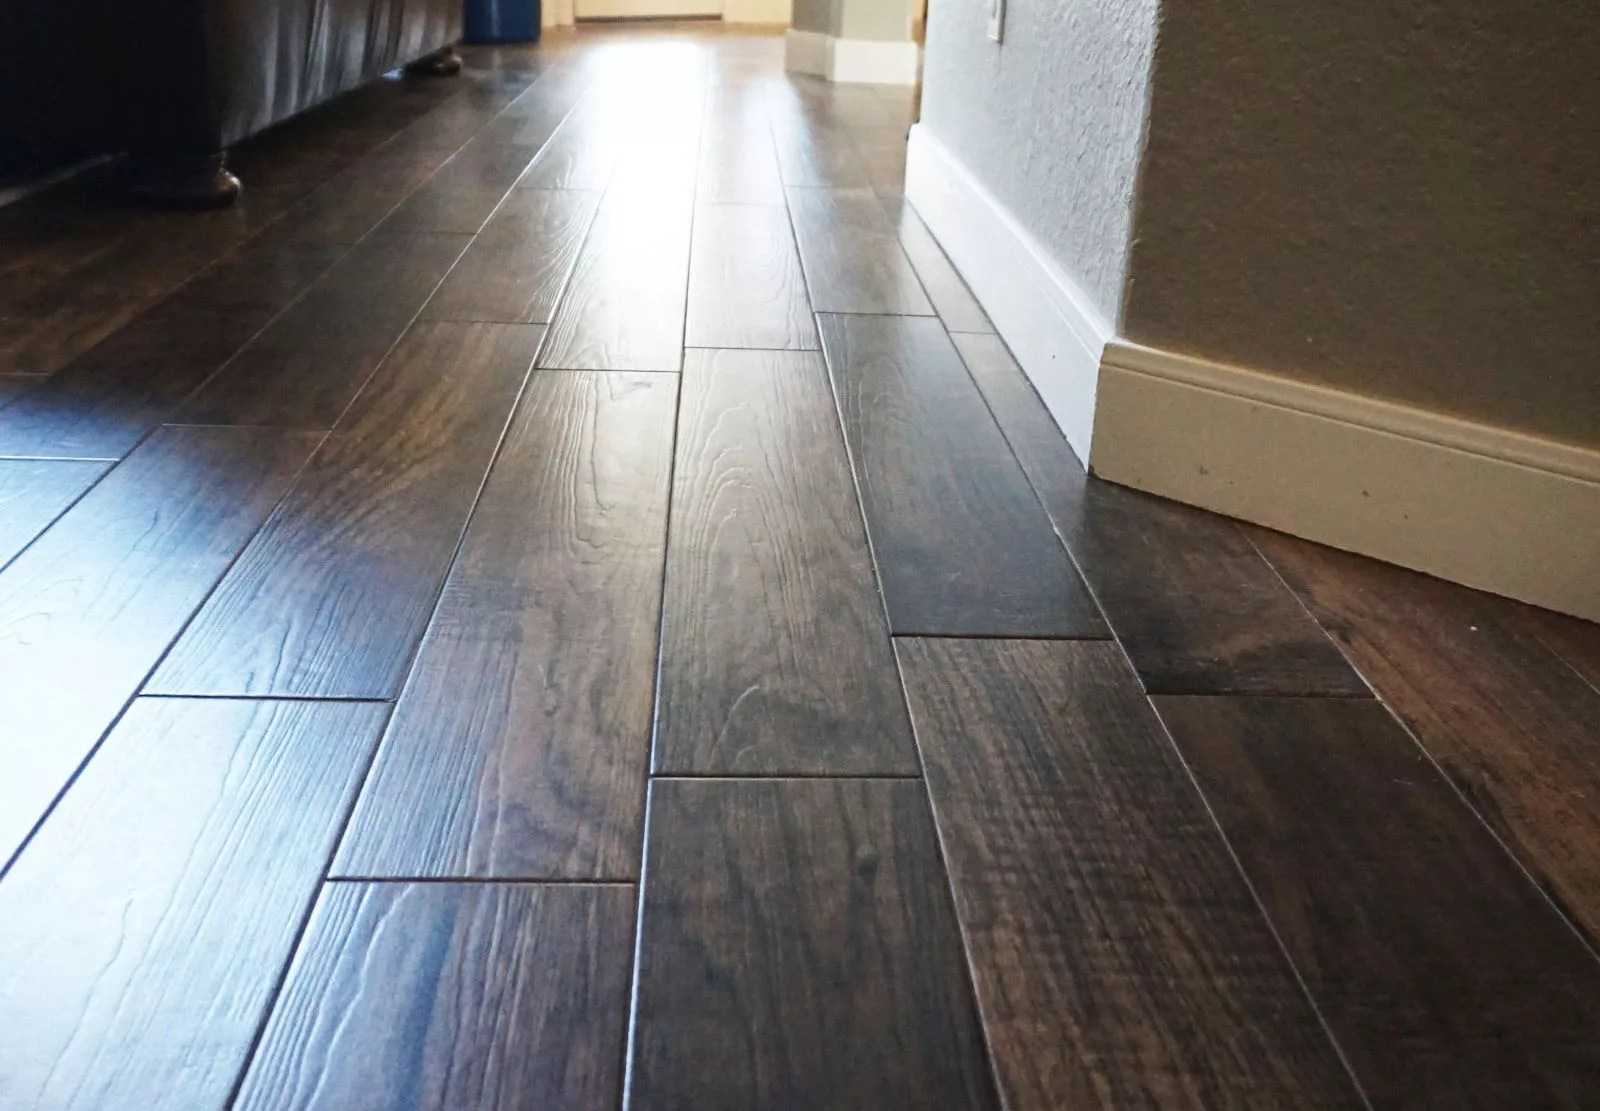 Wood-look tile flooring reviews - pros and cons, brands and more